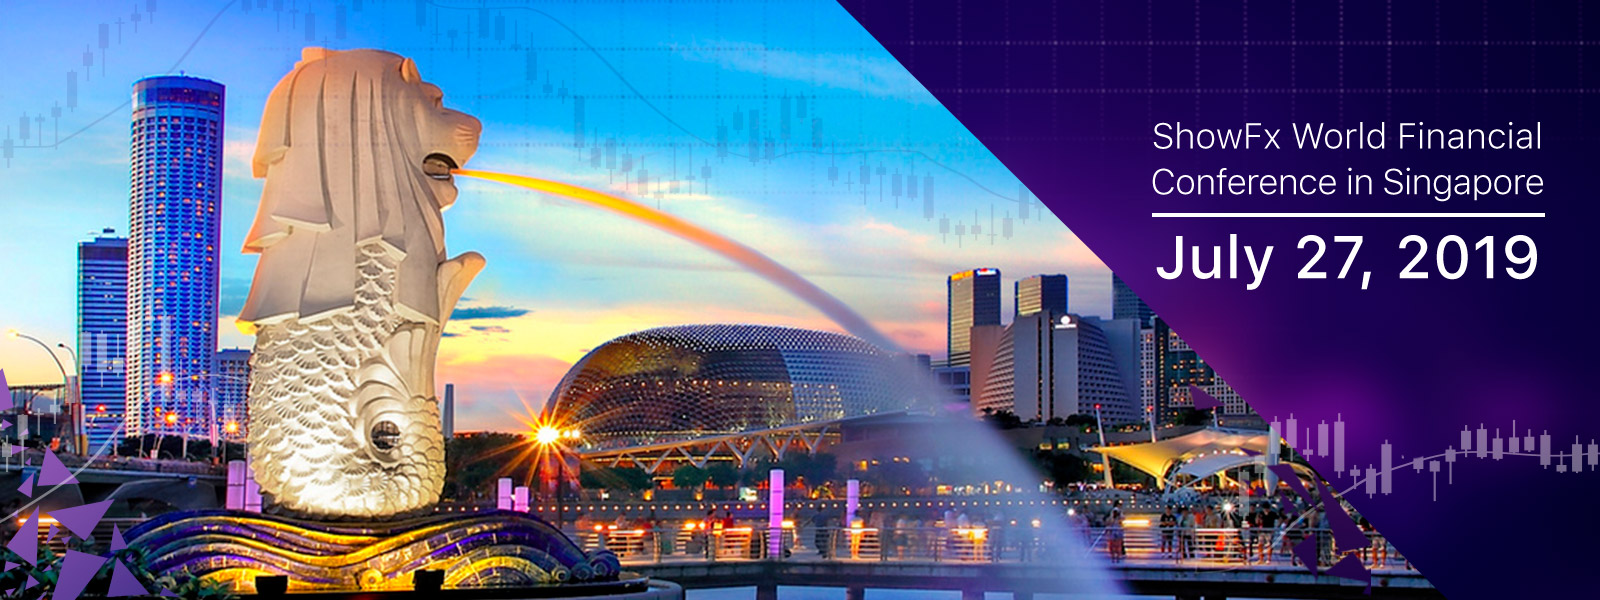 5 Reasons to Attend ShowFx World Financial Conference in Singapore